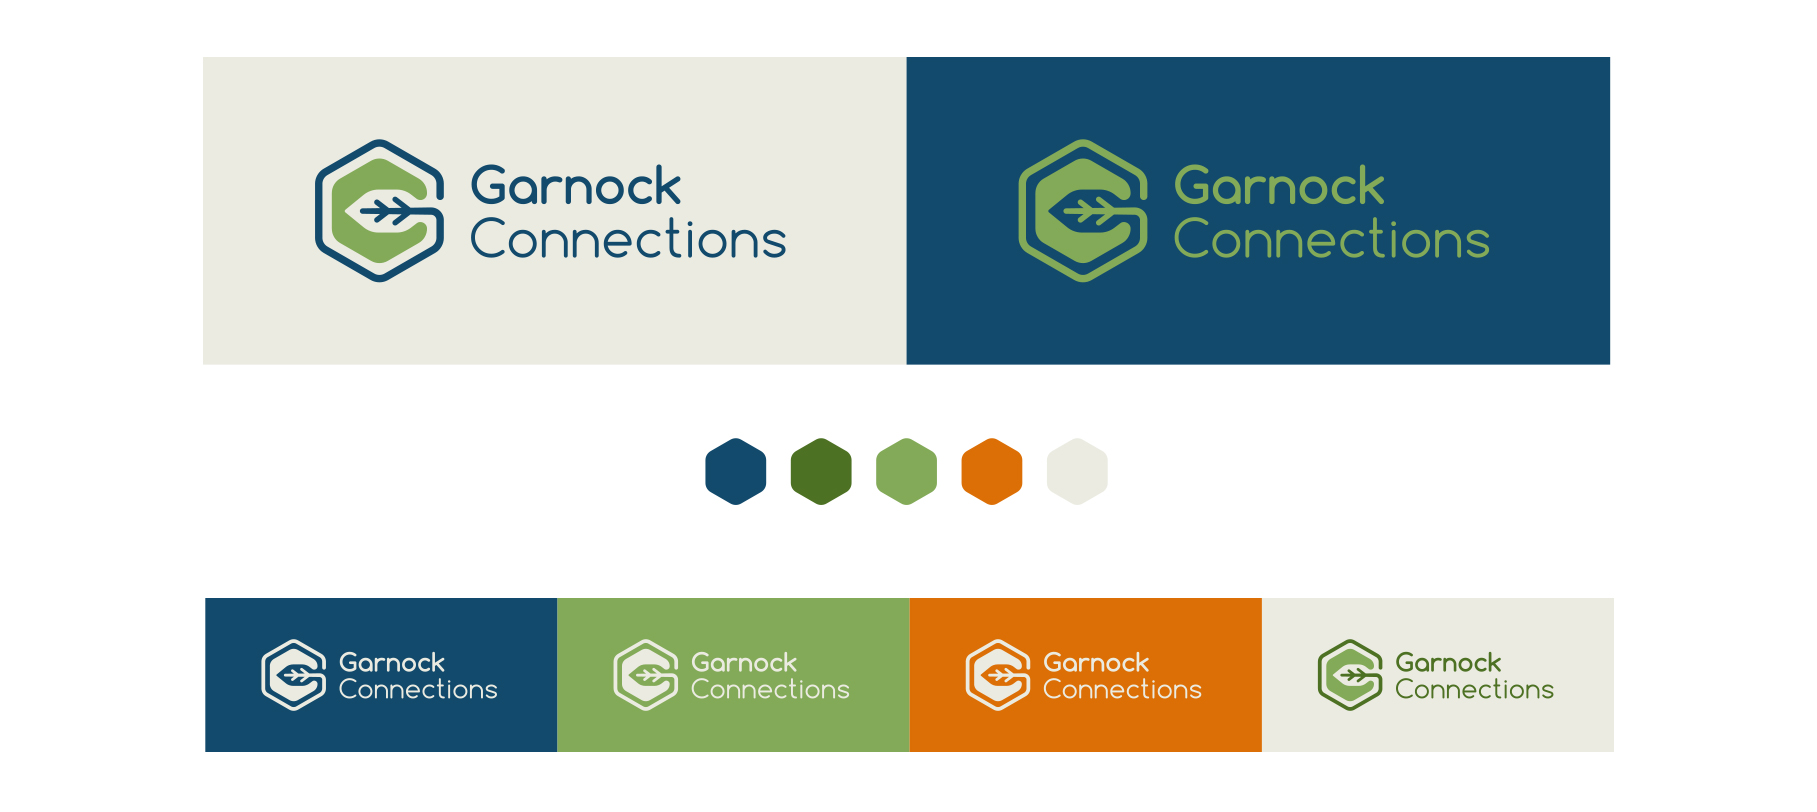 Garnock Connections Logo Variations